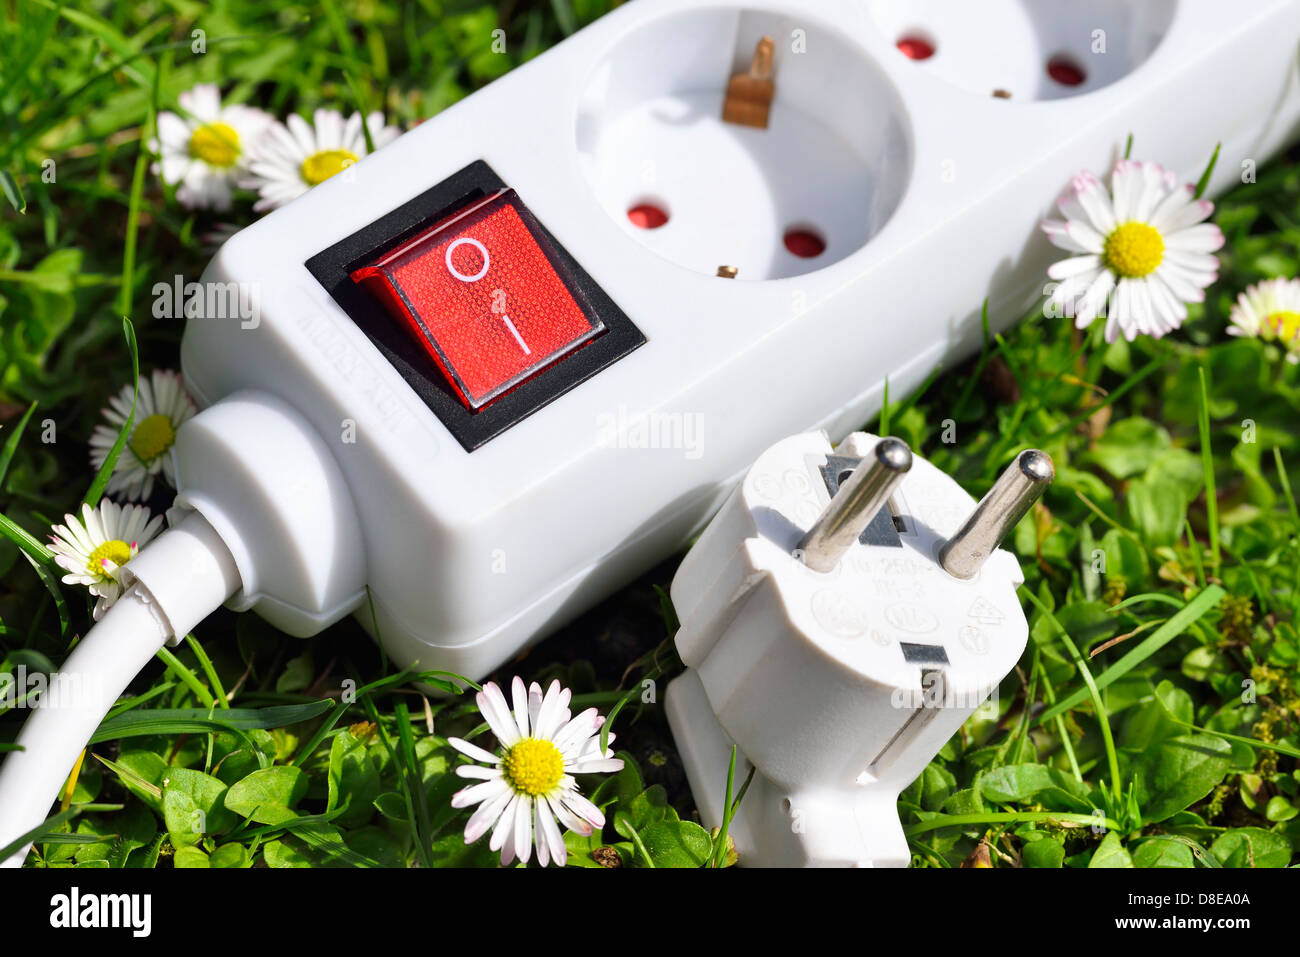 Outlet in grass, green energy symbol photo - Stock Image